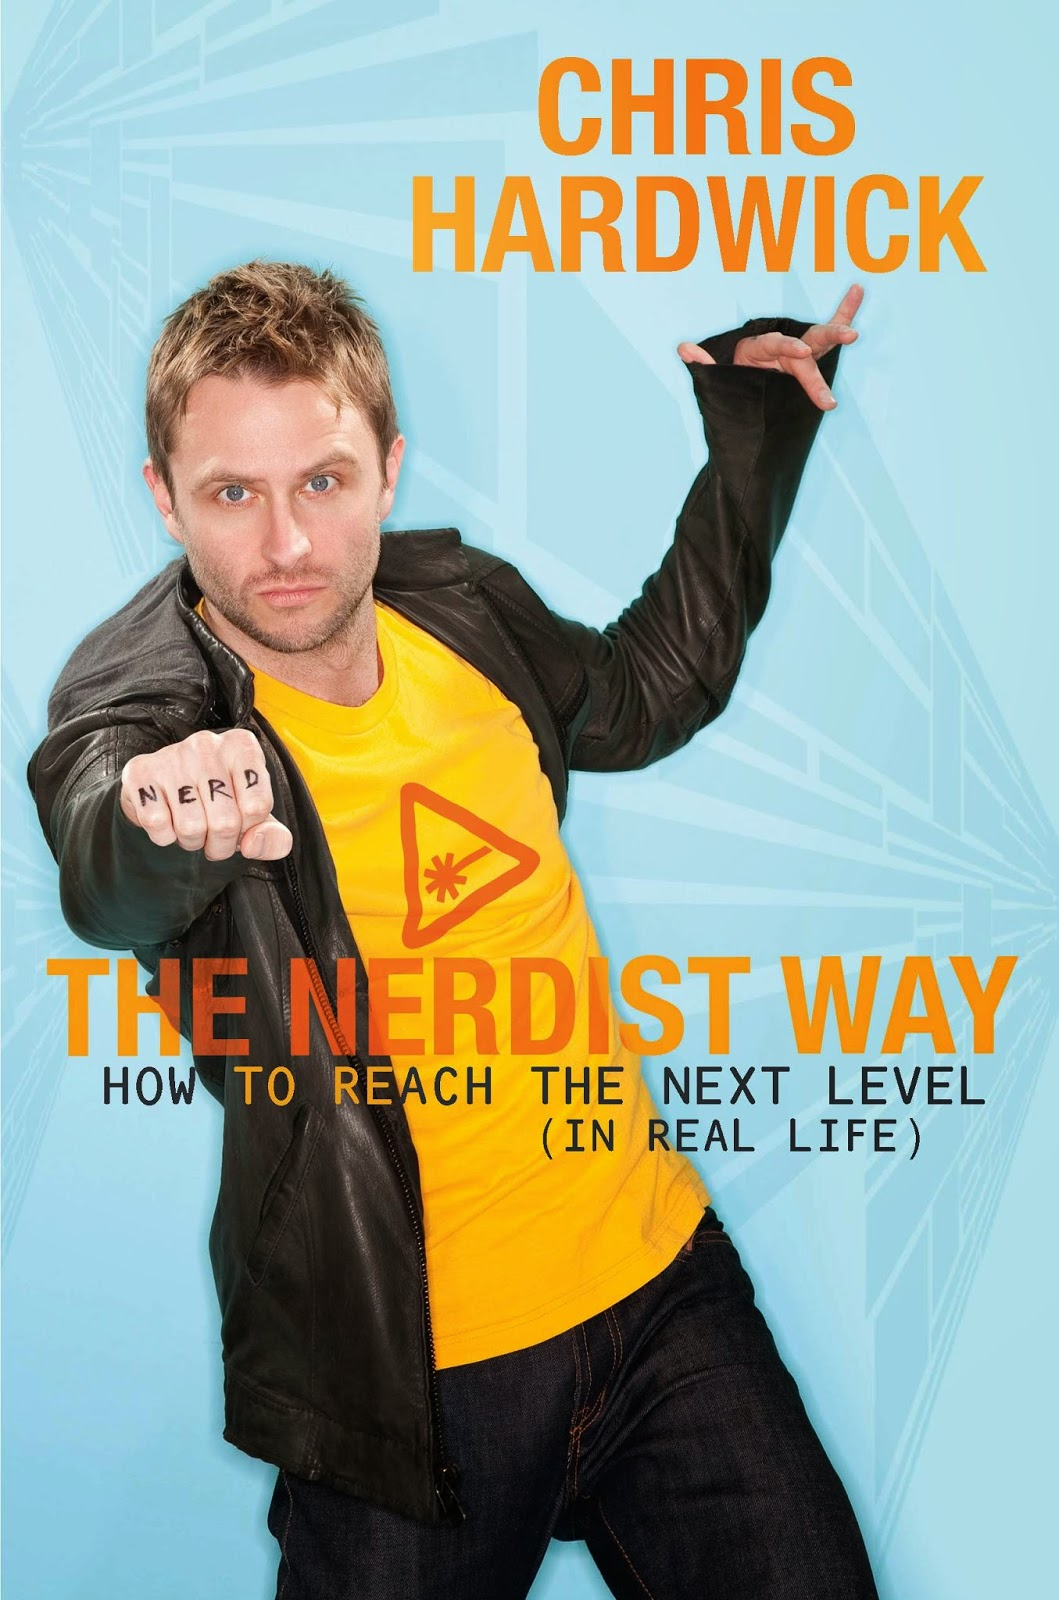 Chris Hardwick The Nerdist Way